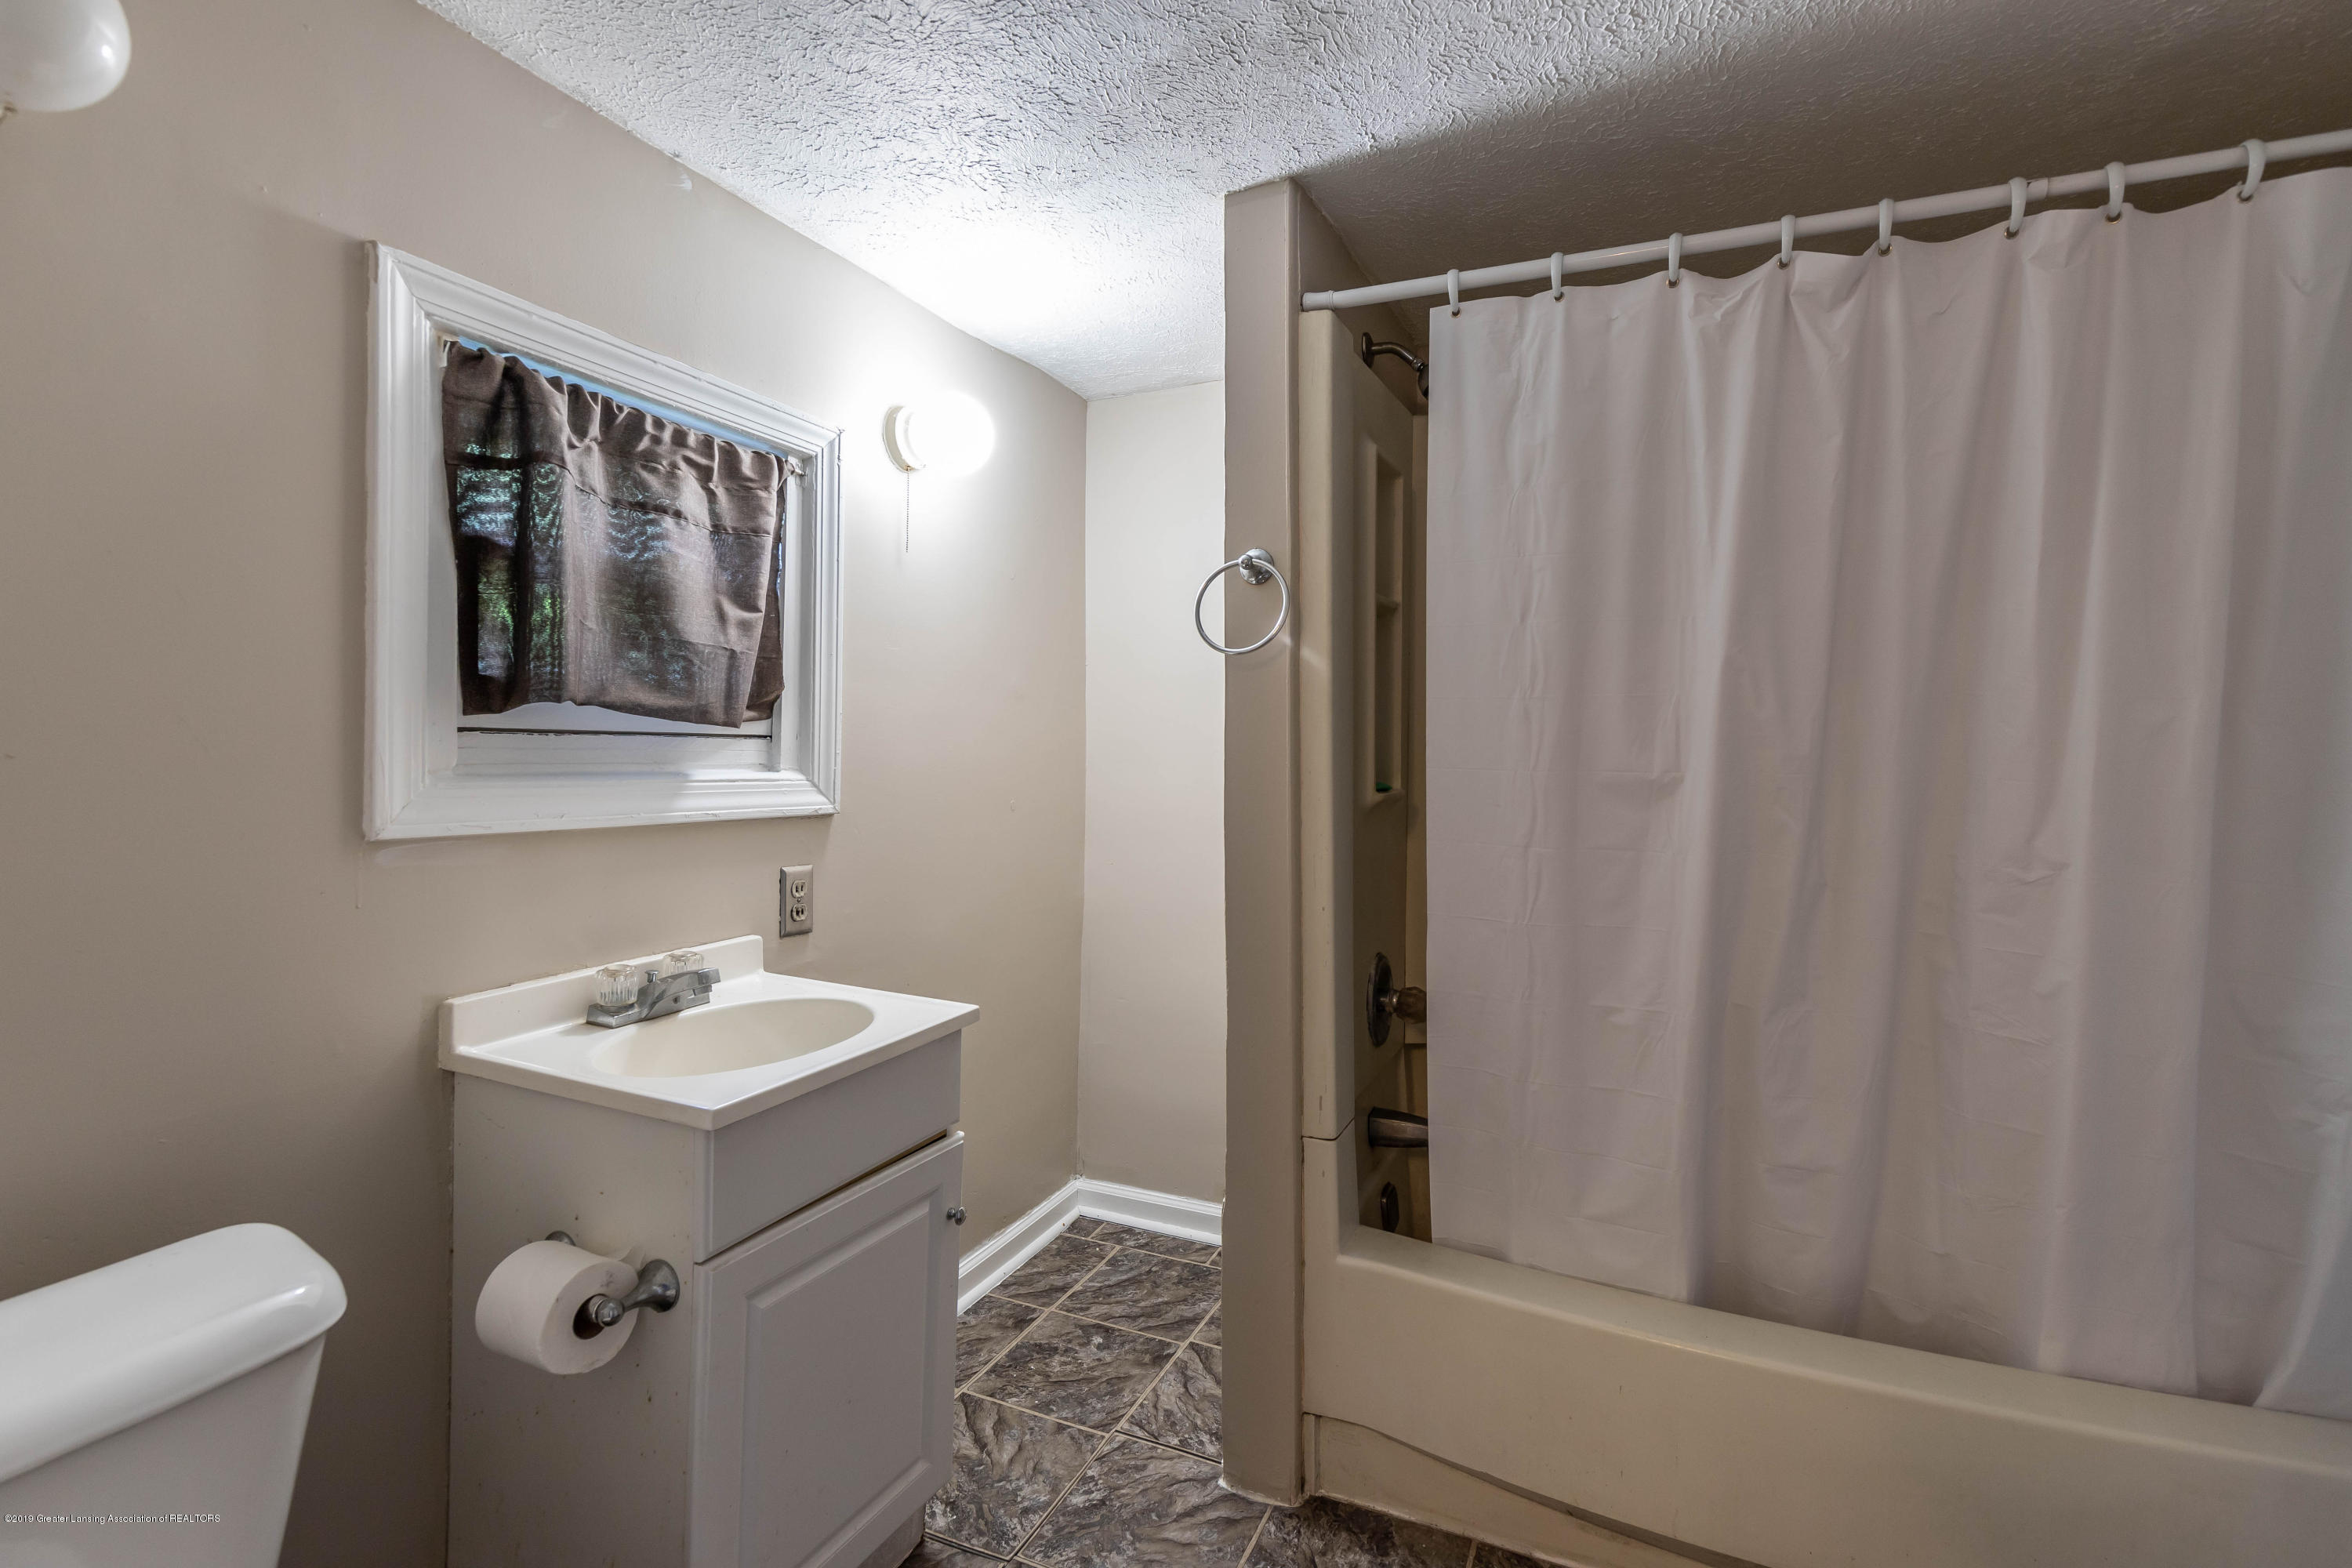 638 Jessop Ave - Bathroom - 11